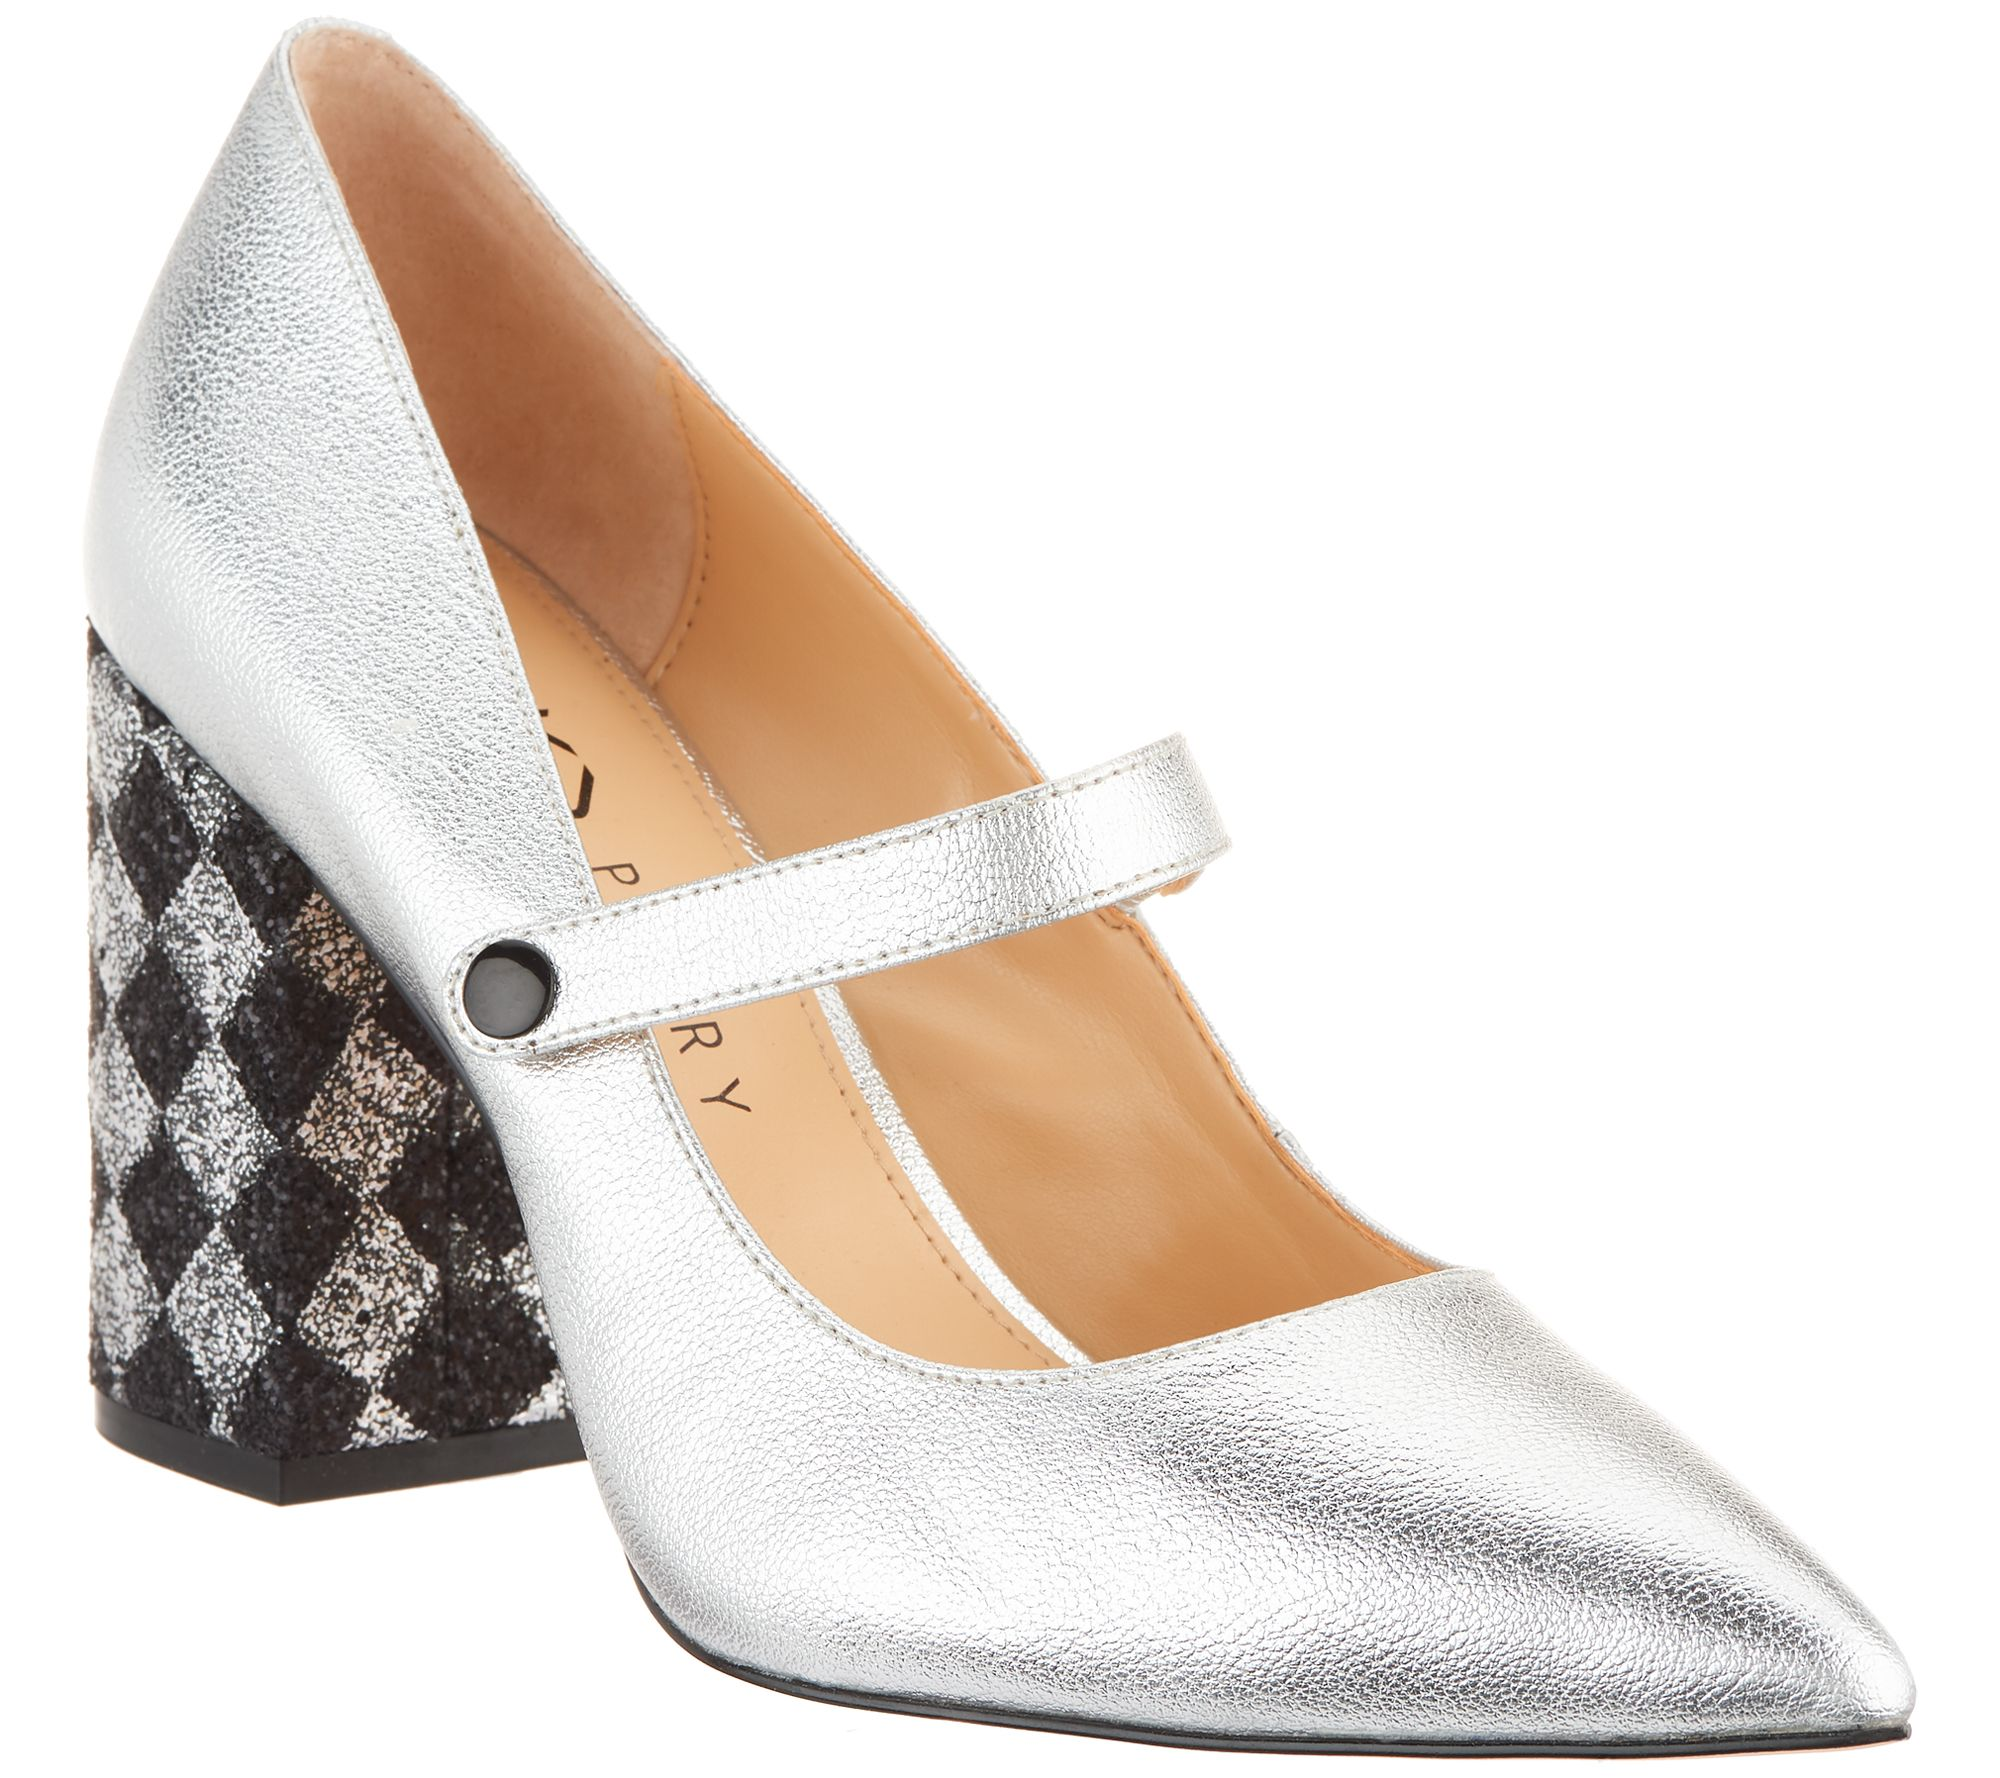 5676f44f708 Katy Perry Leather Pointed Toe Mary Janes - The June — QVC.com